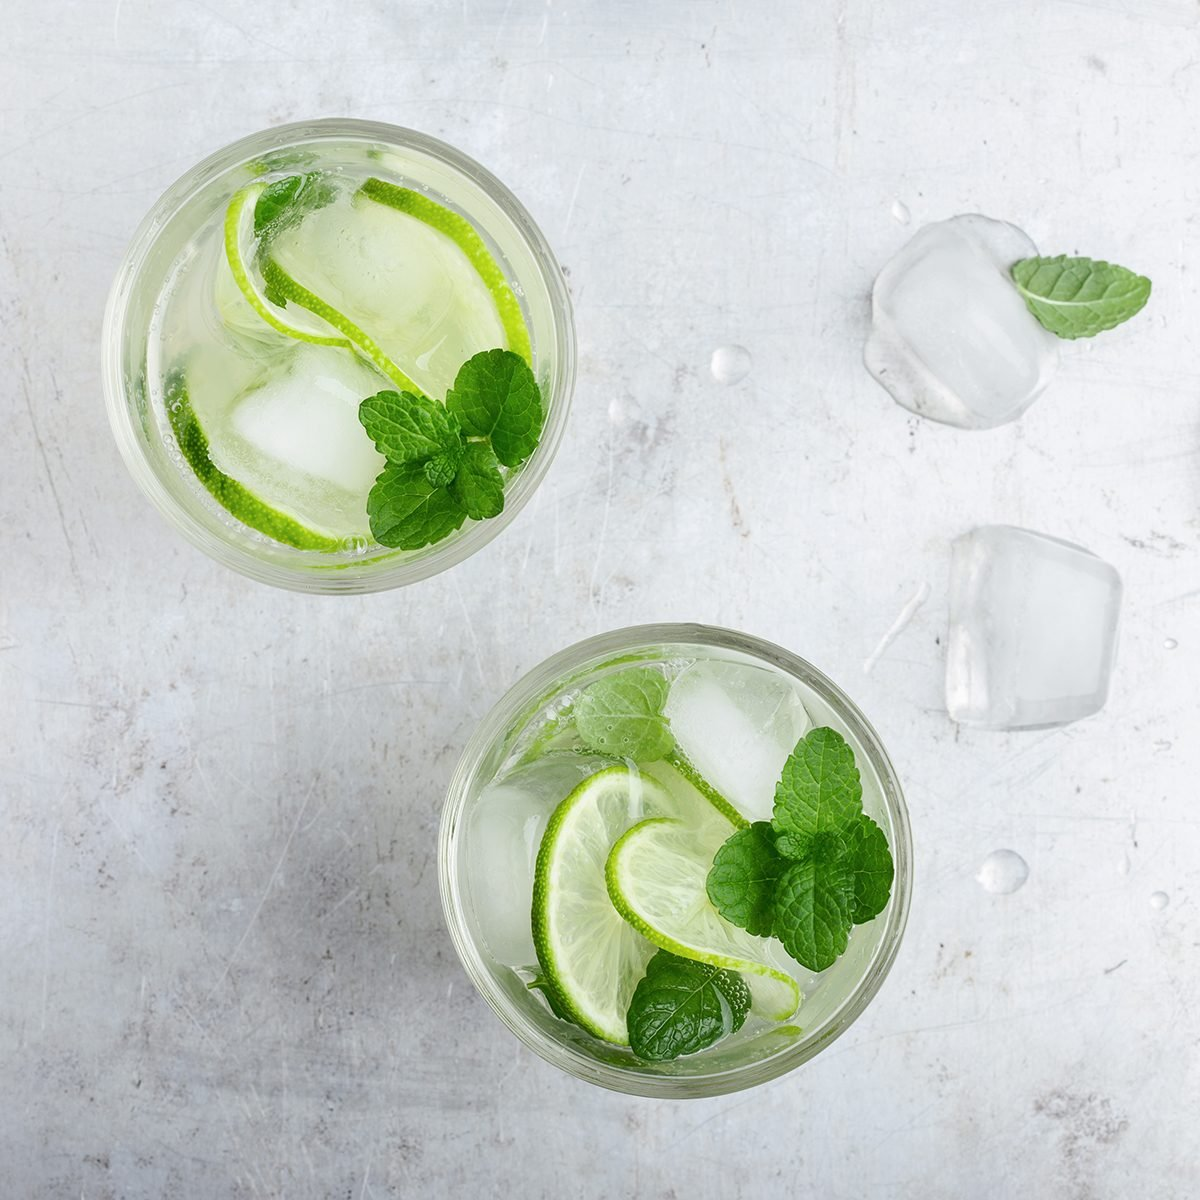 Cold drinks. Glasses of homemade iced cold lemonade with fresh lime, juice and mint leaves, refreshing summer drink, top view